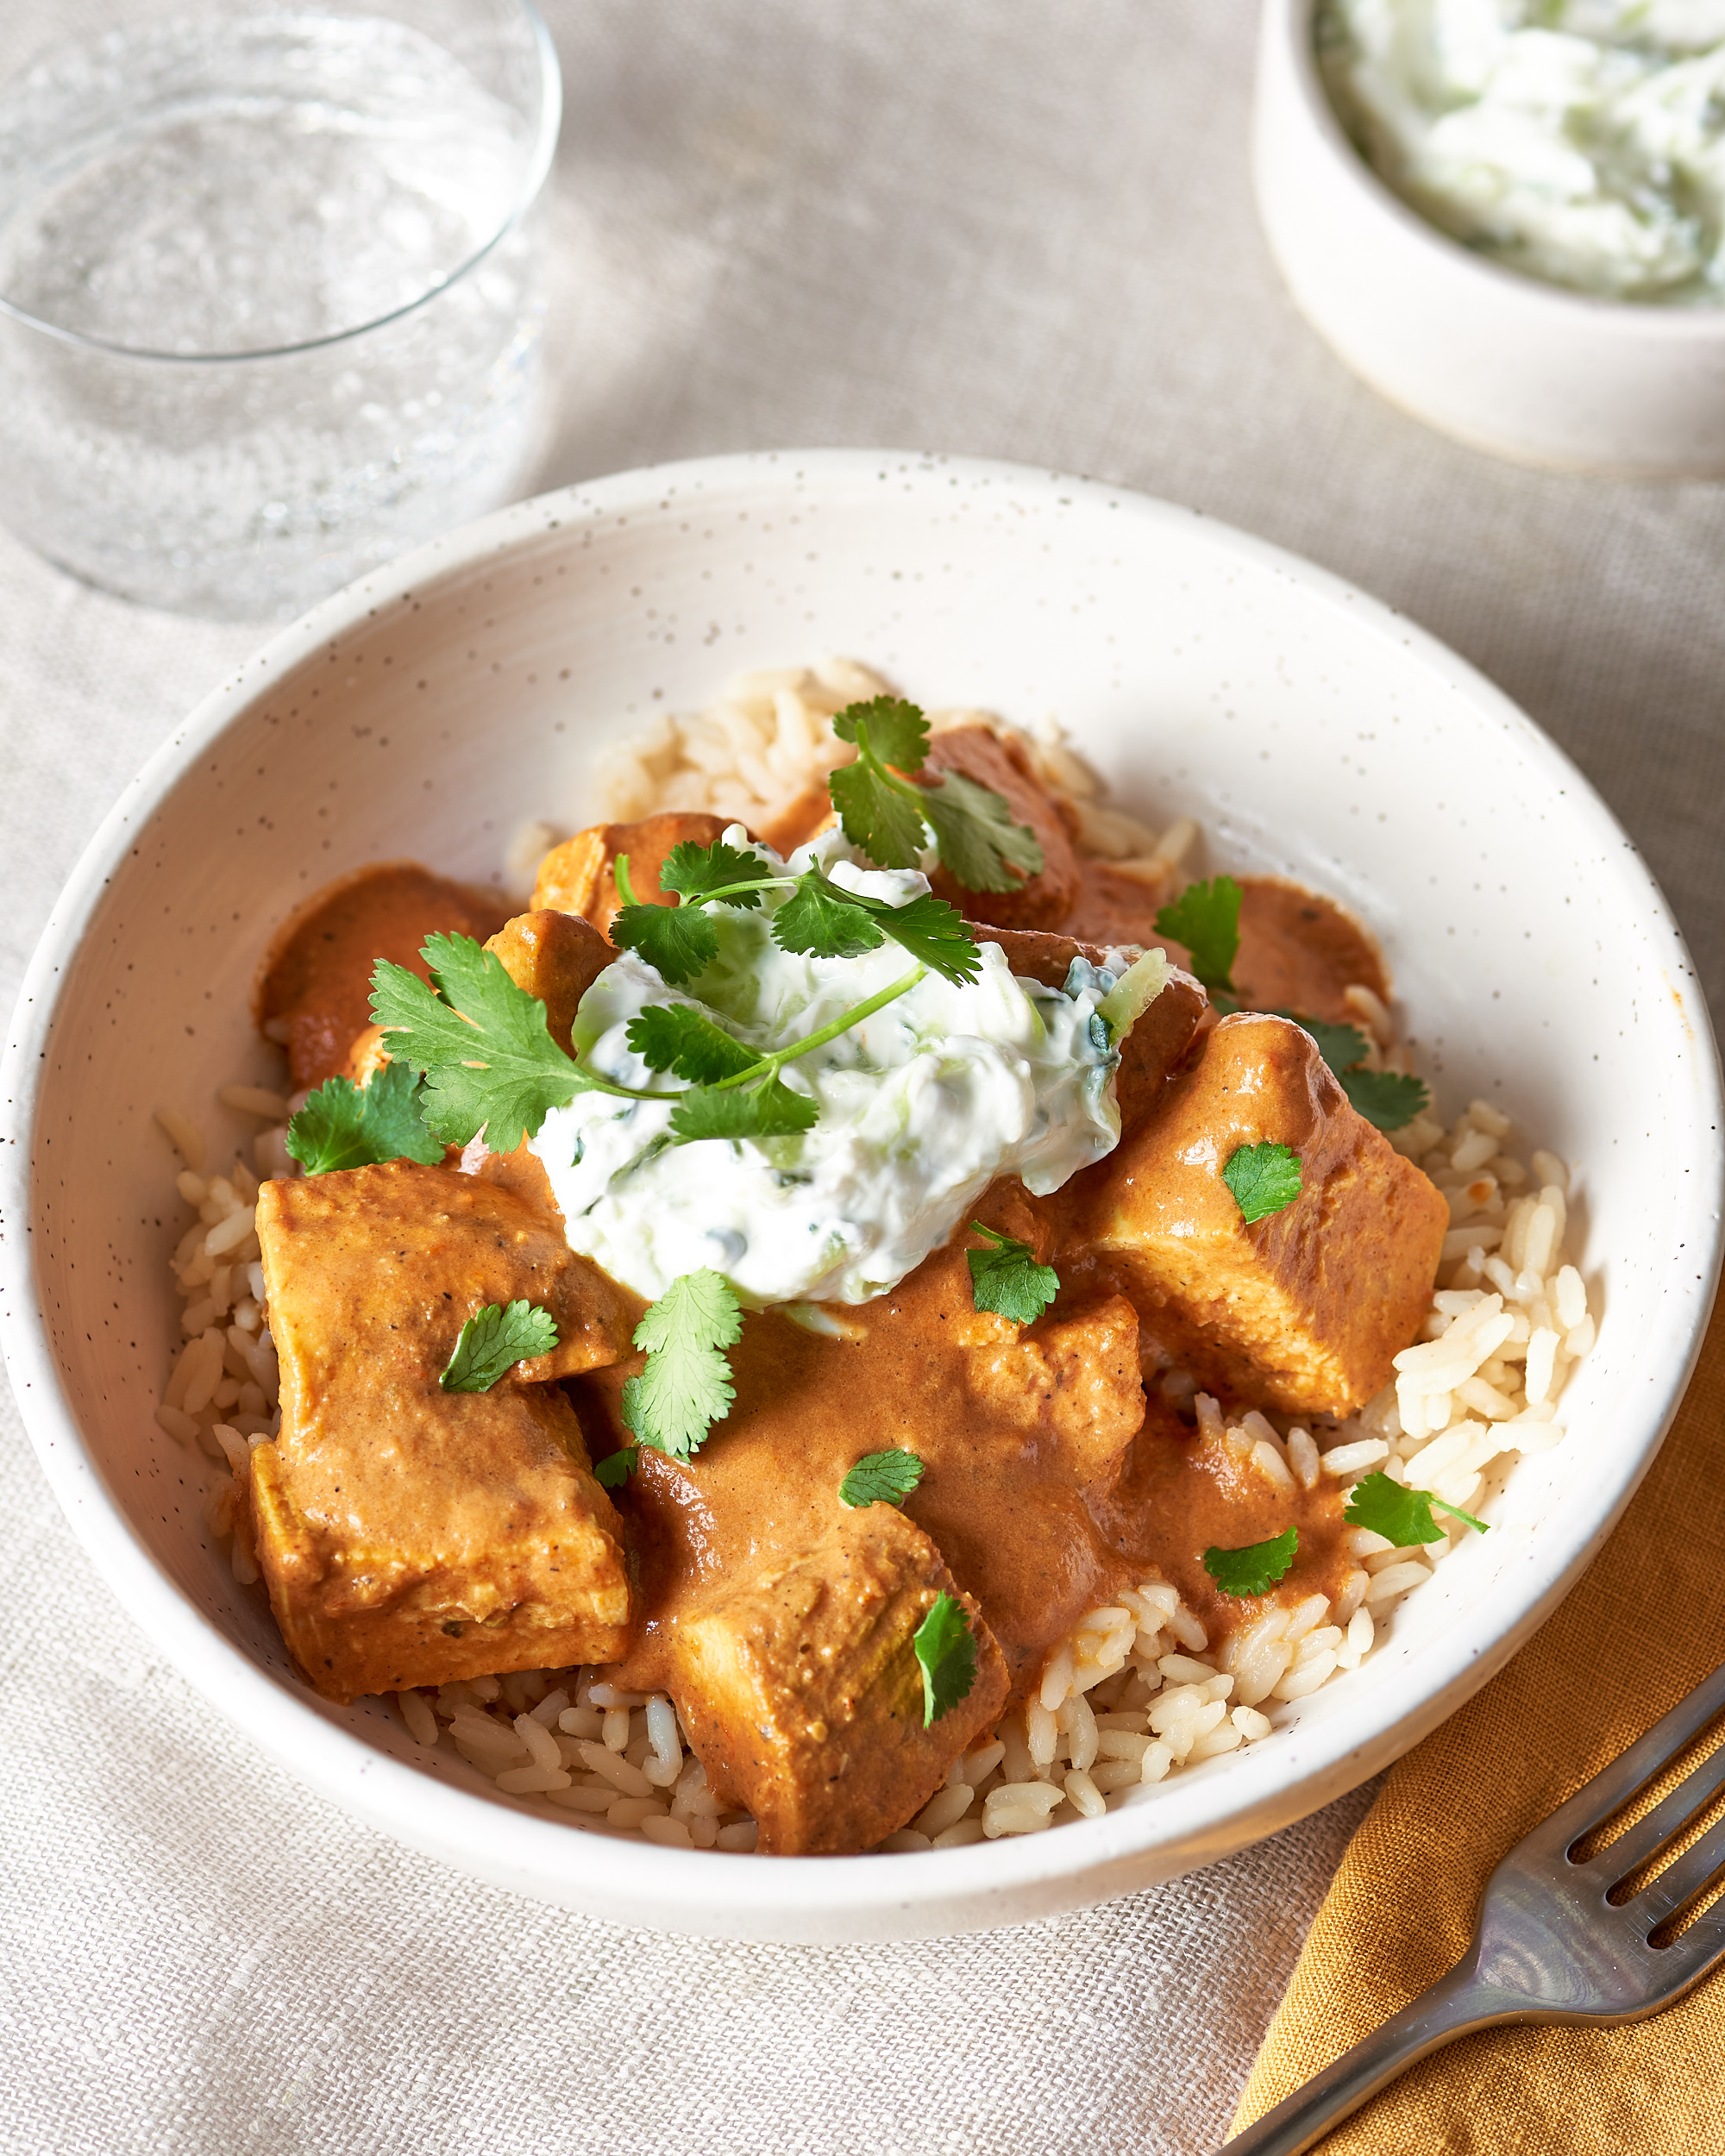 How To Make Butter Chicken in the Instant Pot